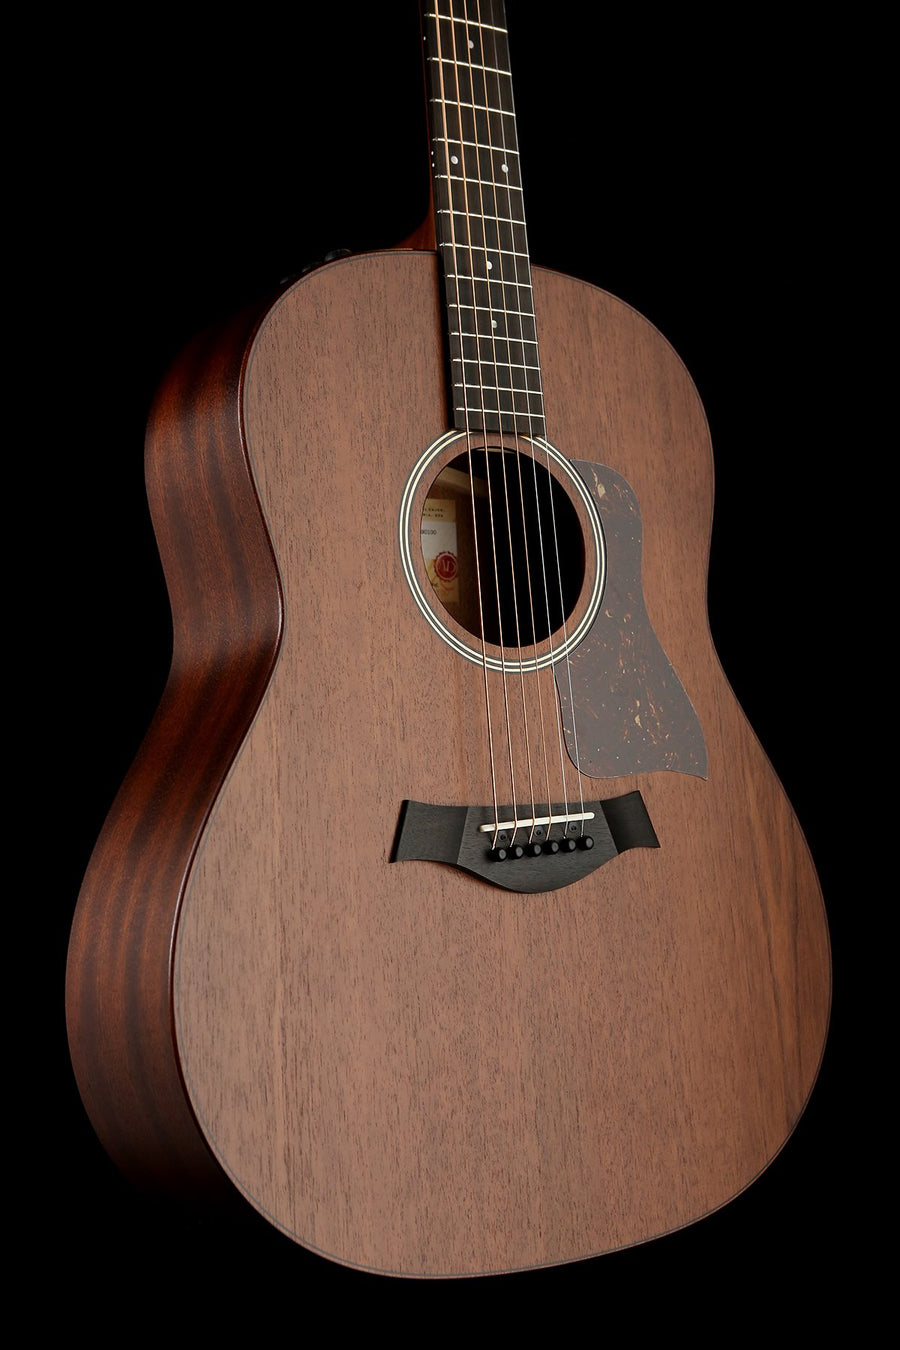 Taylor 'American Dream' AD27e Sapele / Mahogany Acoustic Electric Guitar